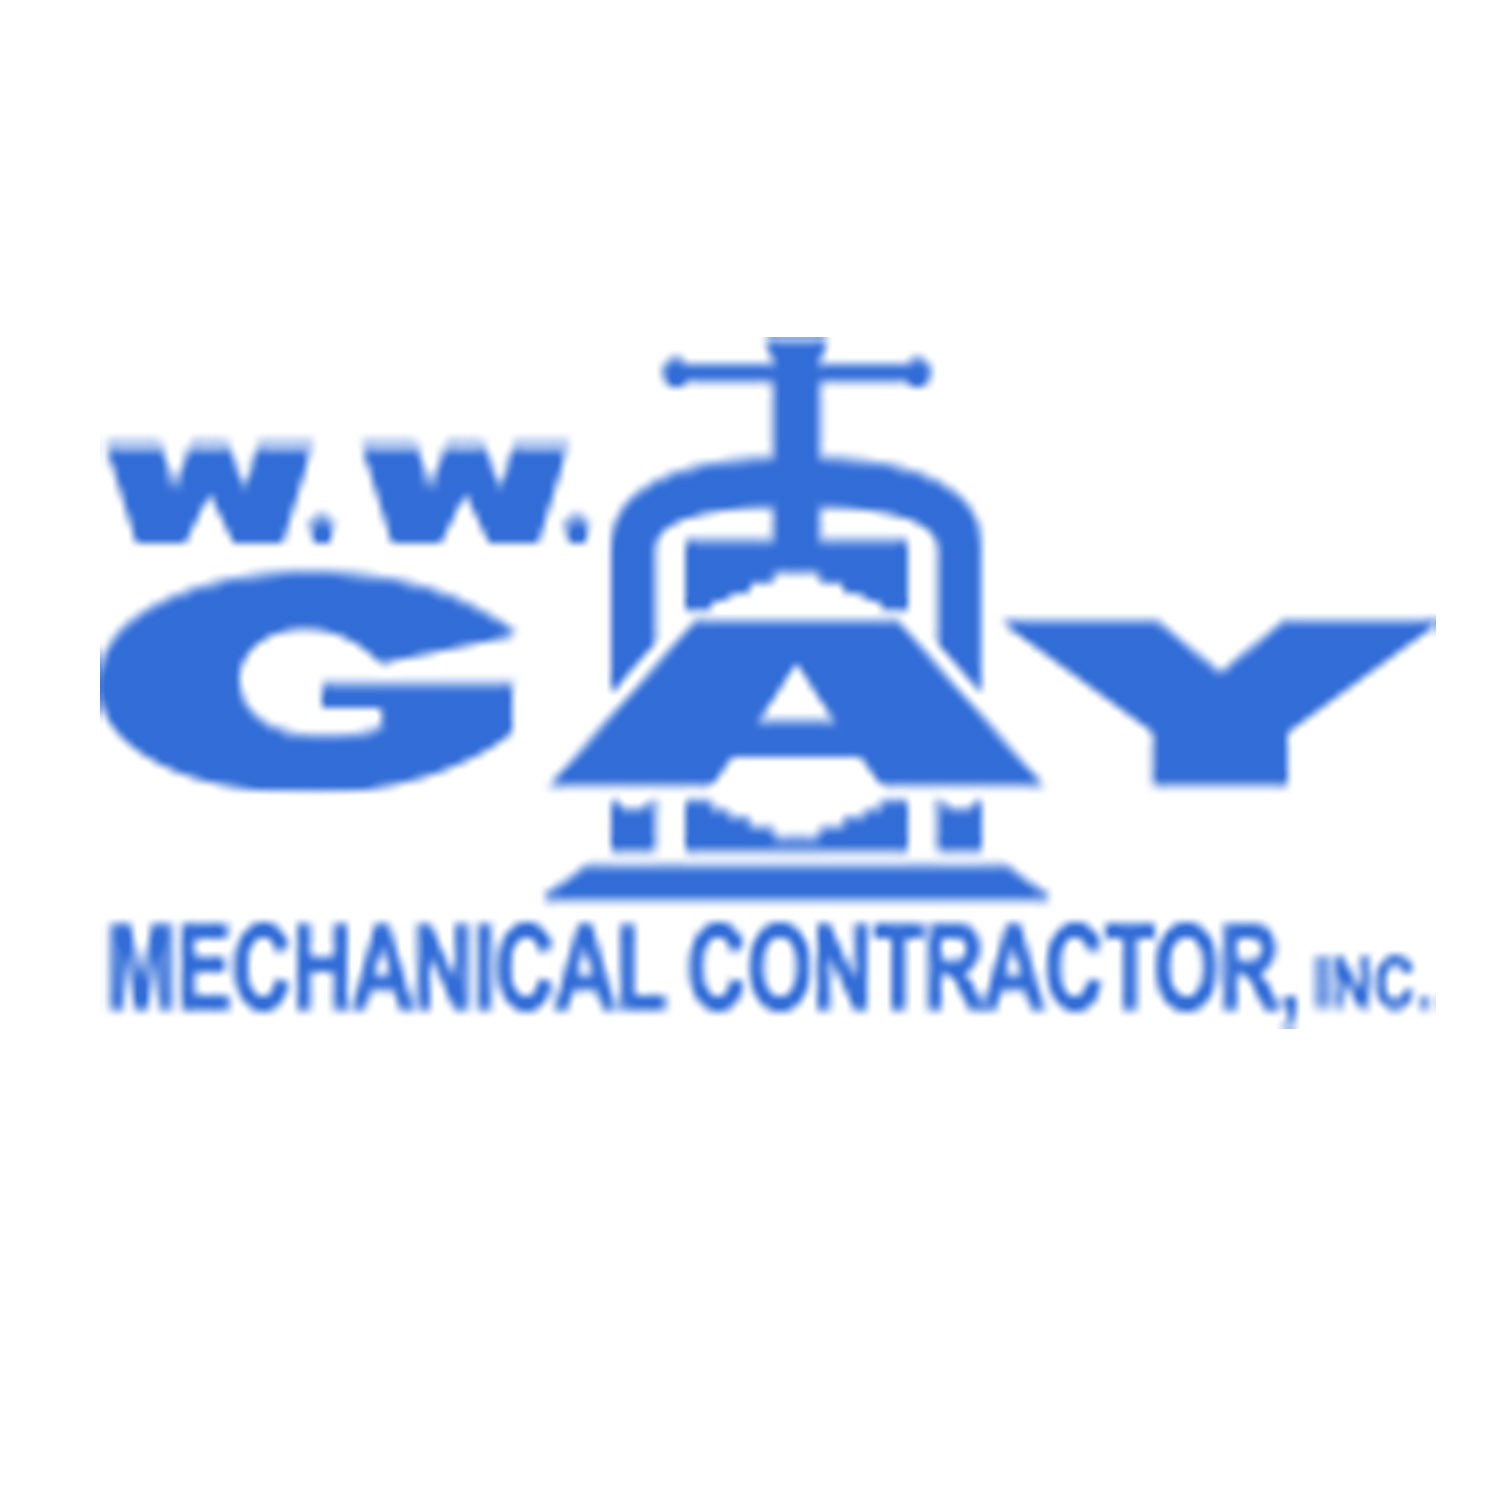 WWGay Mechanical Contractor, Inc.